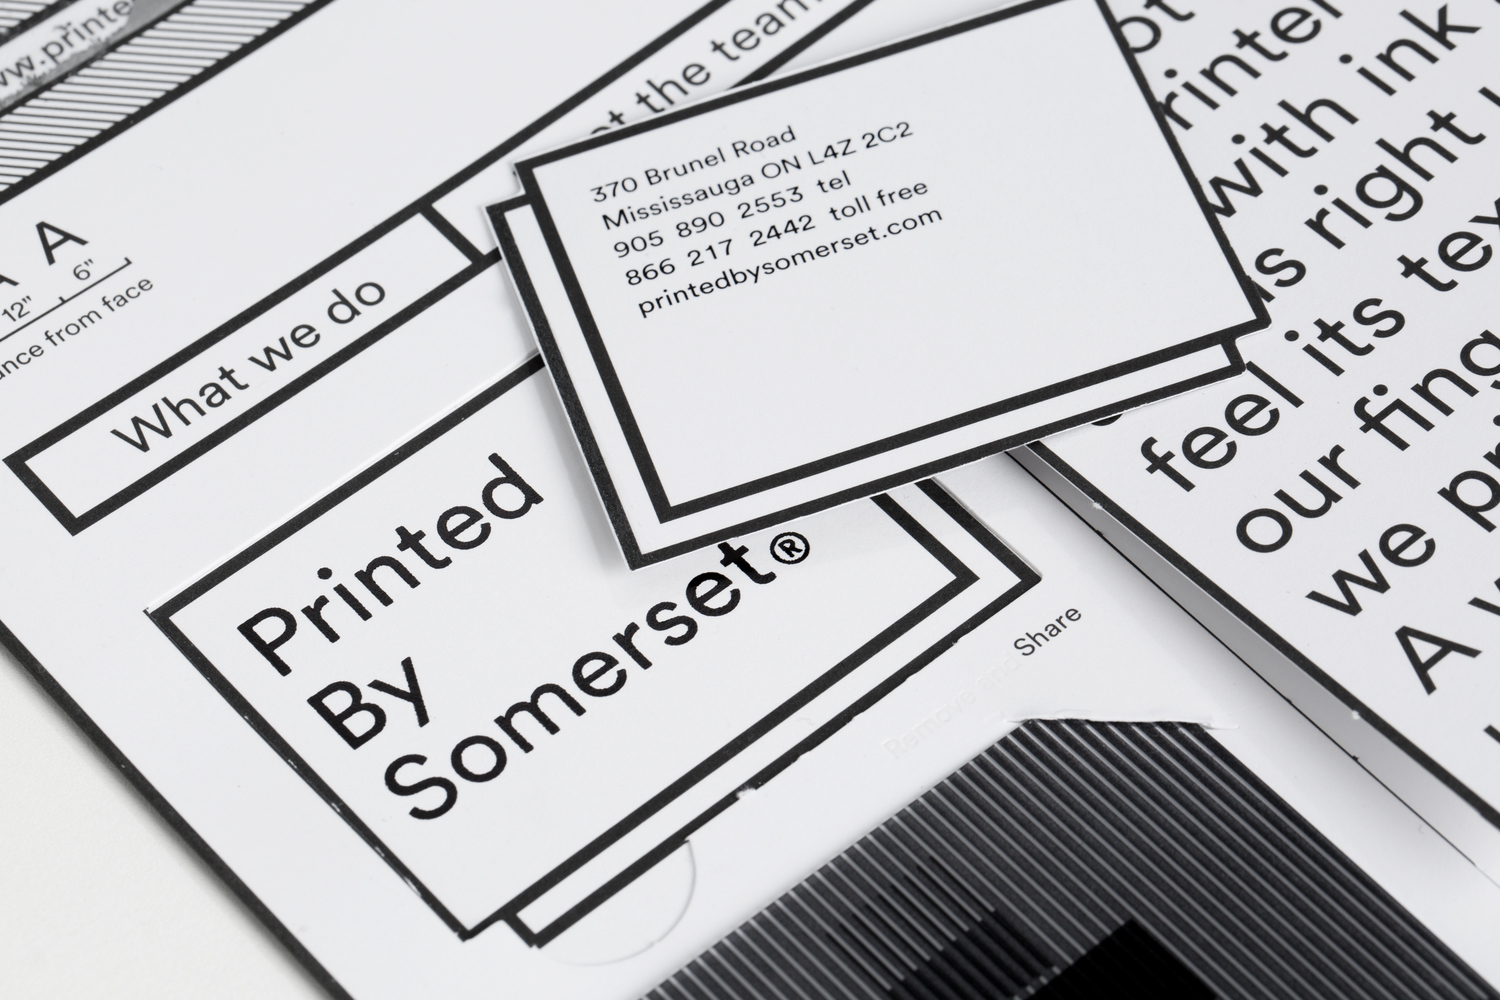 Brand identity and print communication by Leo Burnett Toronto for print production studio Somerset